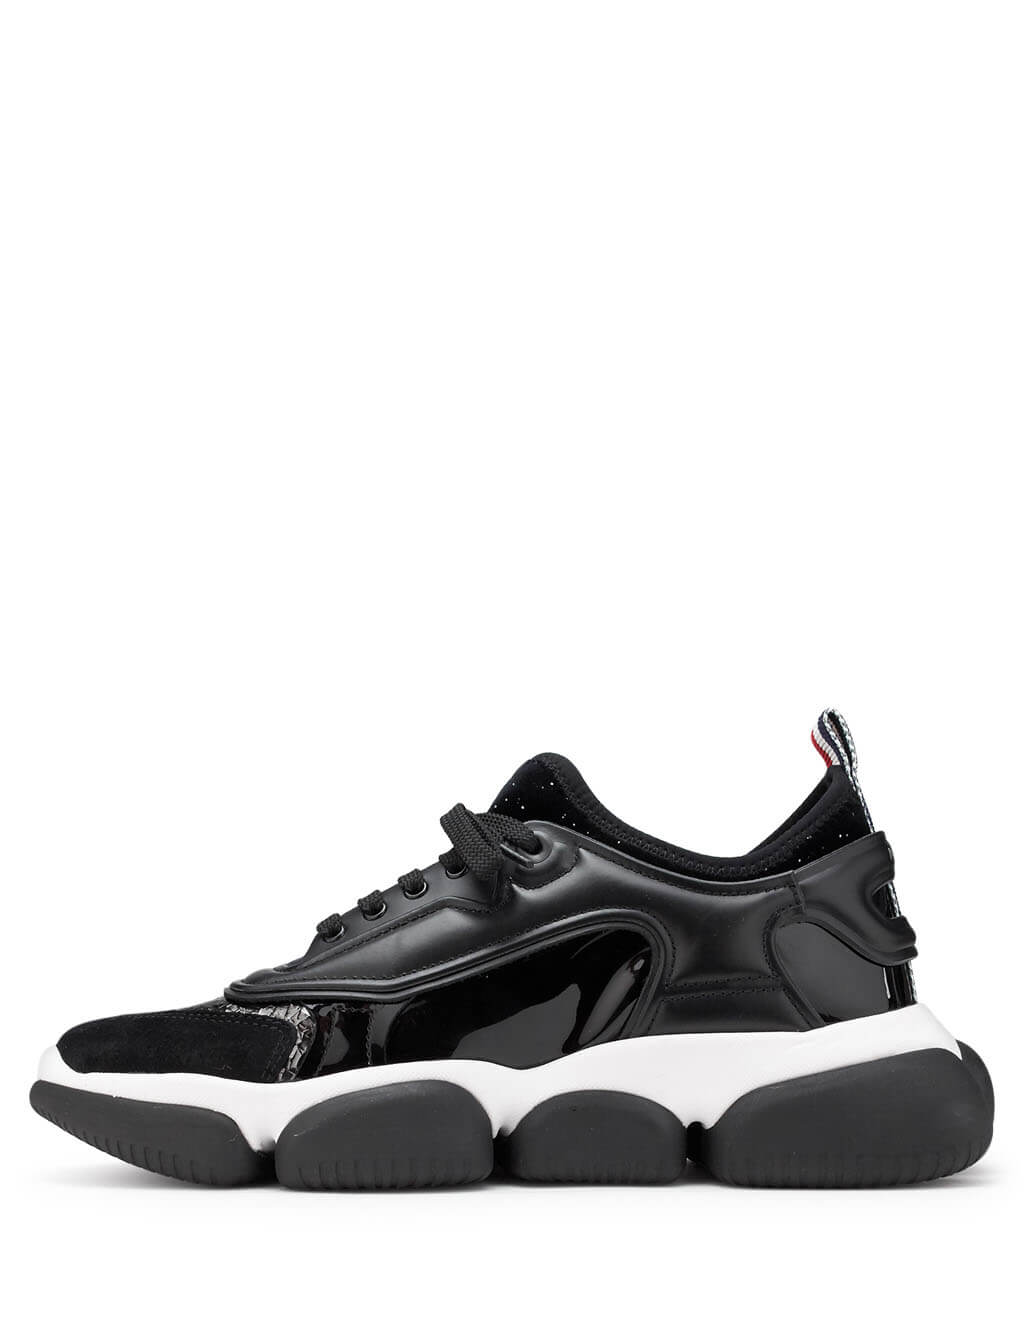 Moncler Women's Black Briseis Sneakers 205110001Am0999